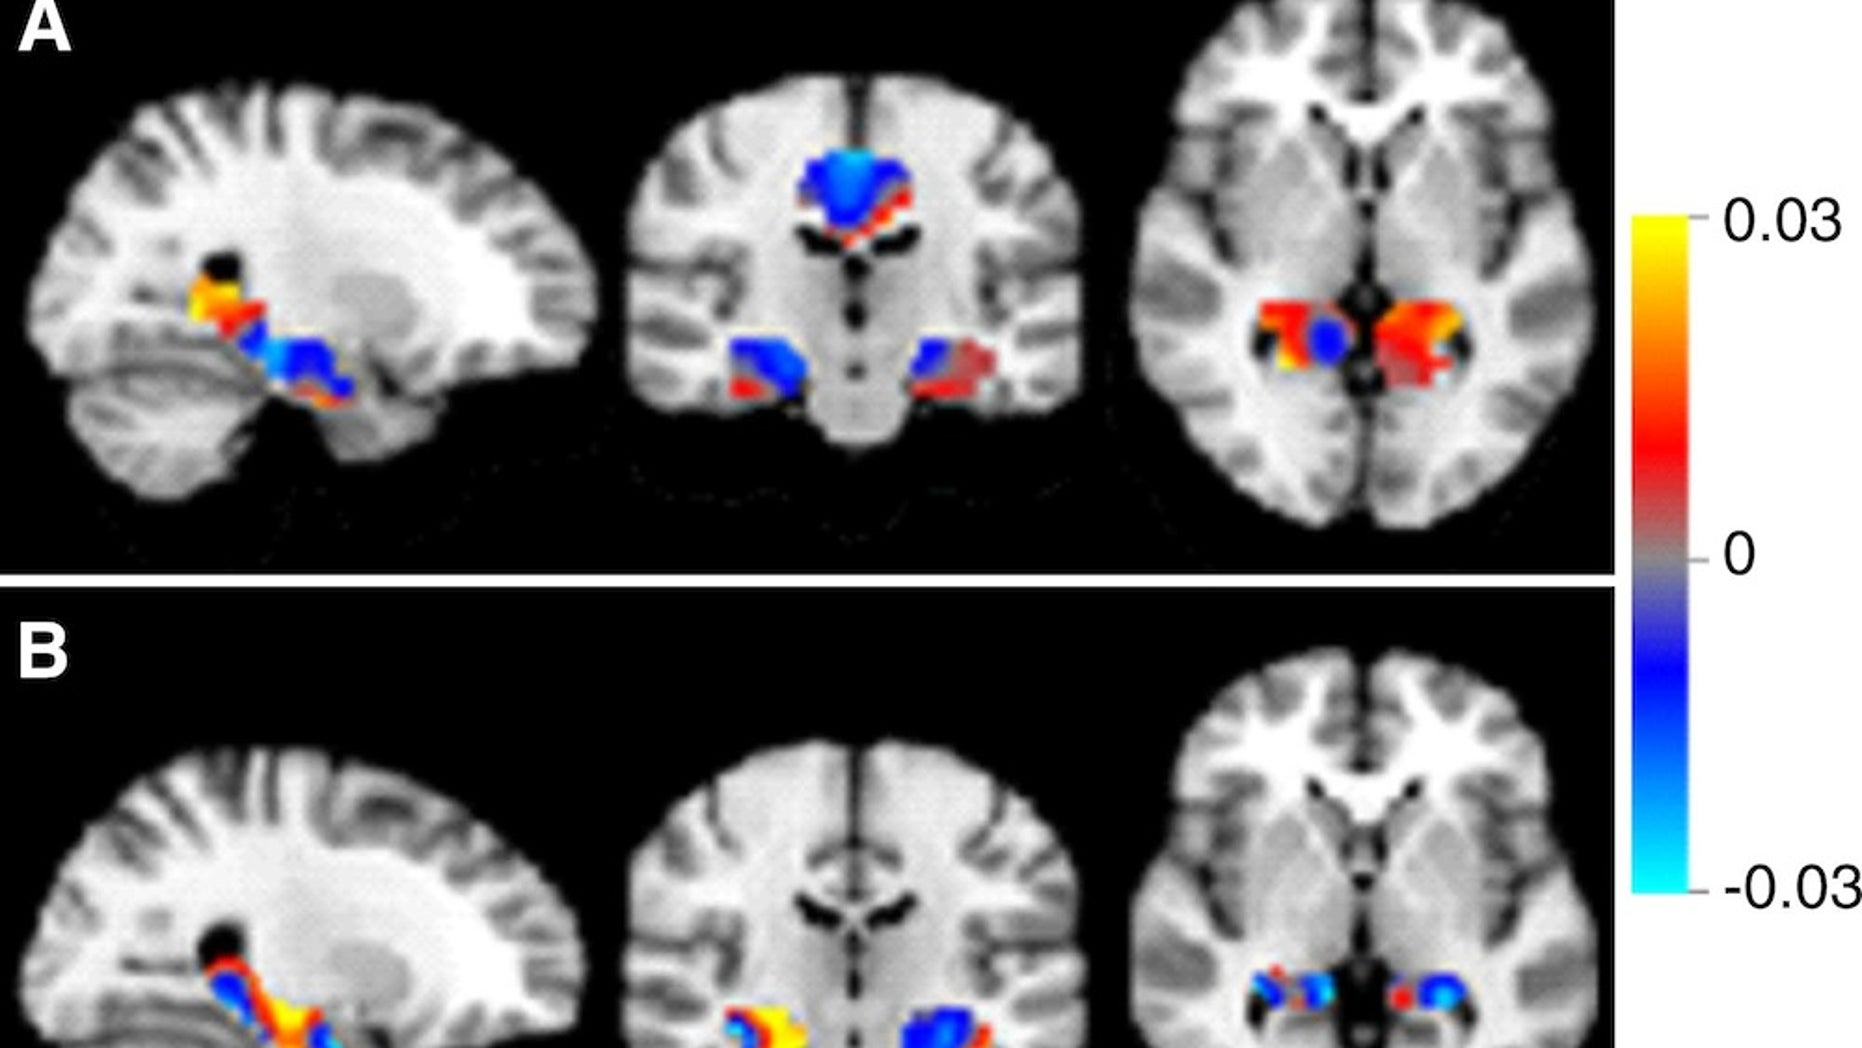 Discrimination maps for classifying mild cognitive impairment (MCI) subgroups, inside the masks that resulted in the highest accuracies. A: between patients with MCI that converted to Alzheimer's disease (MCIc) and s